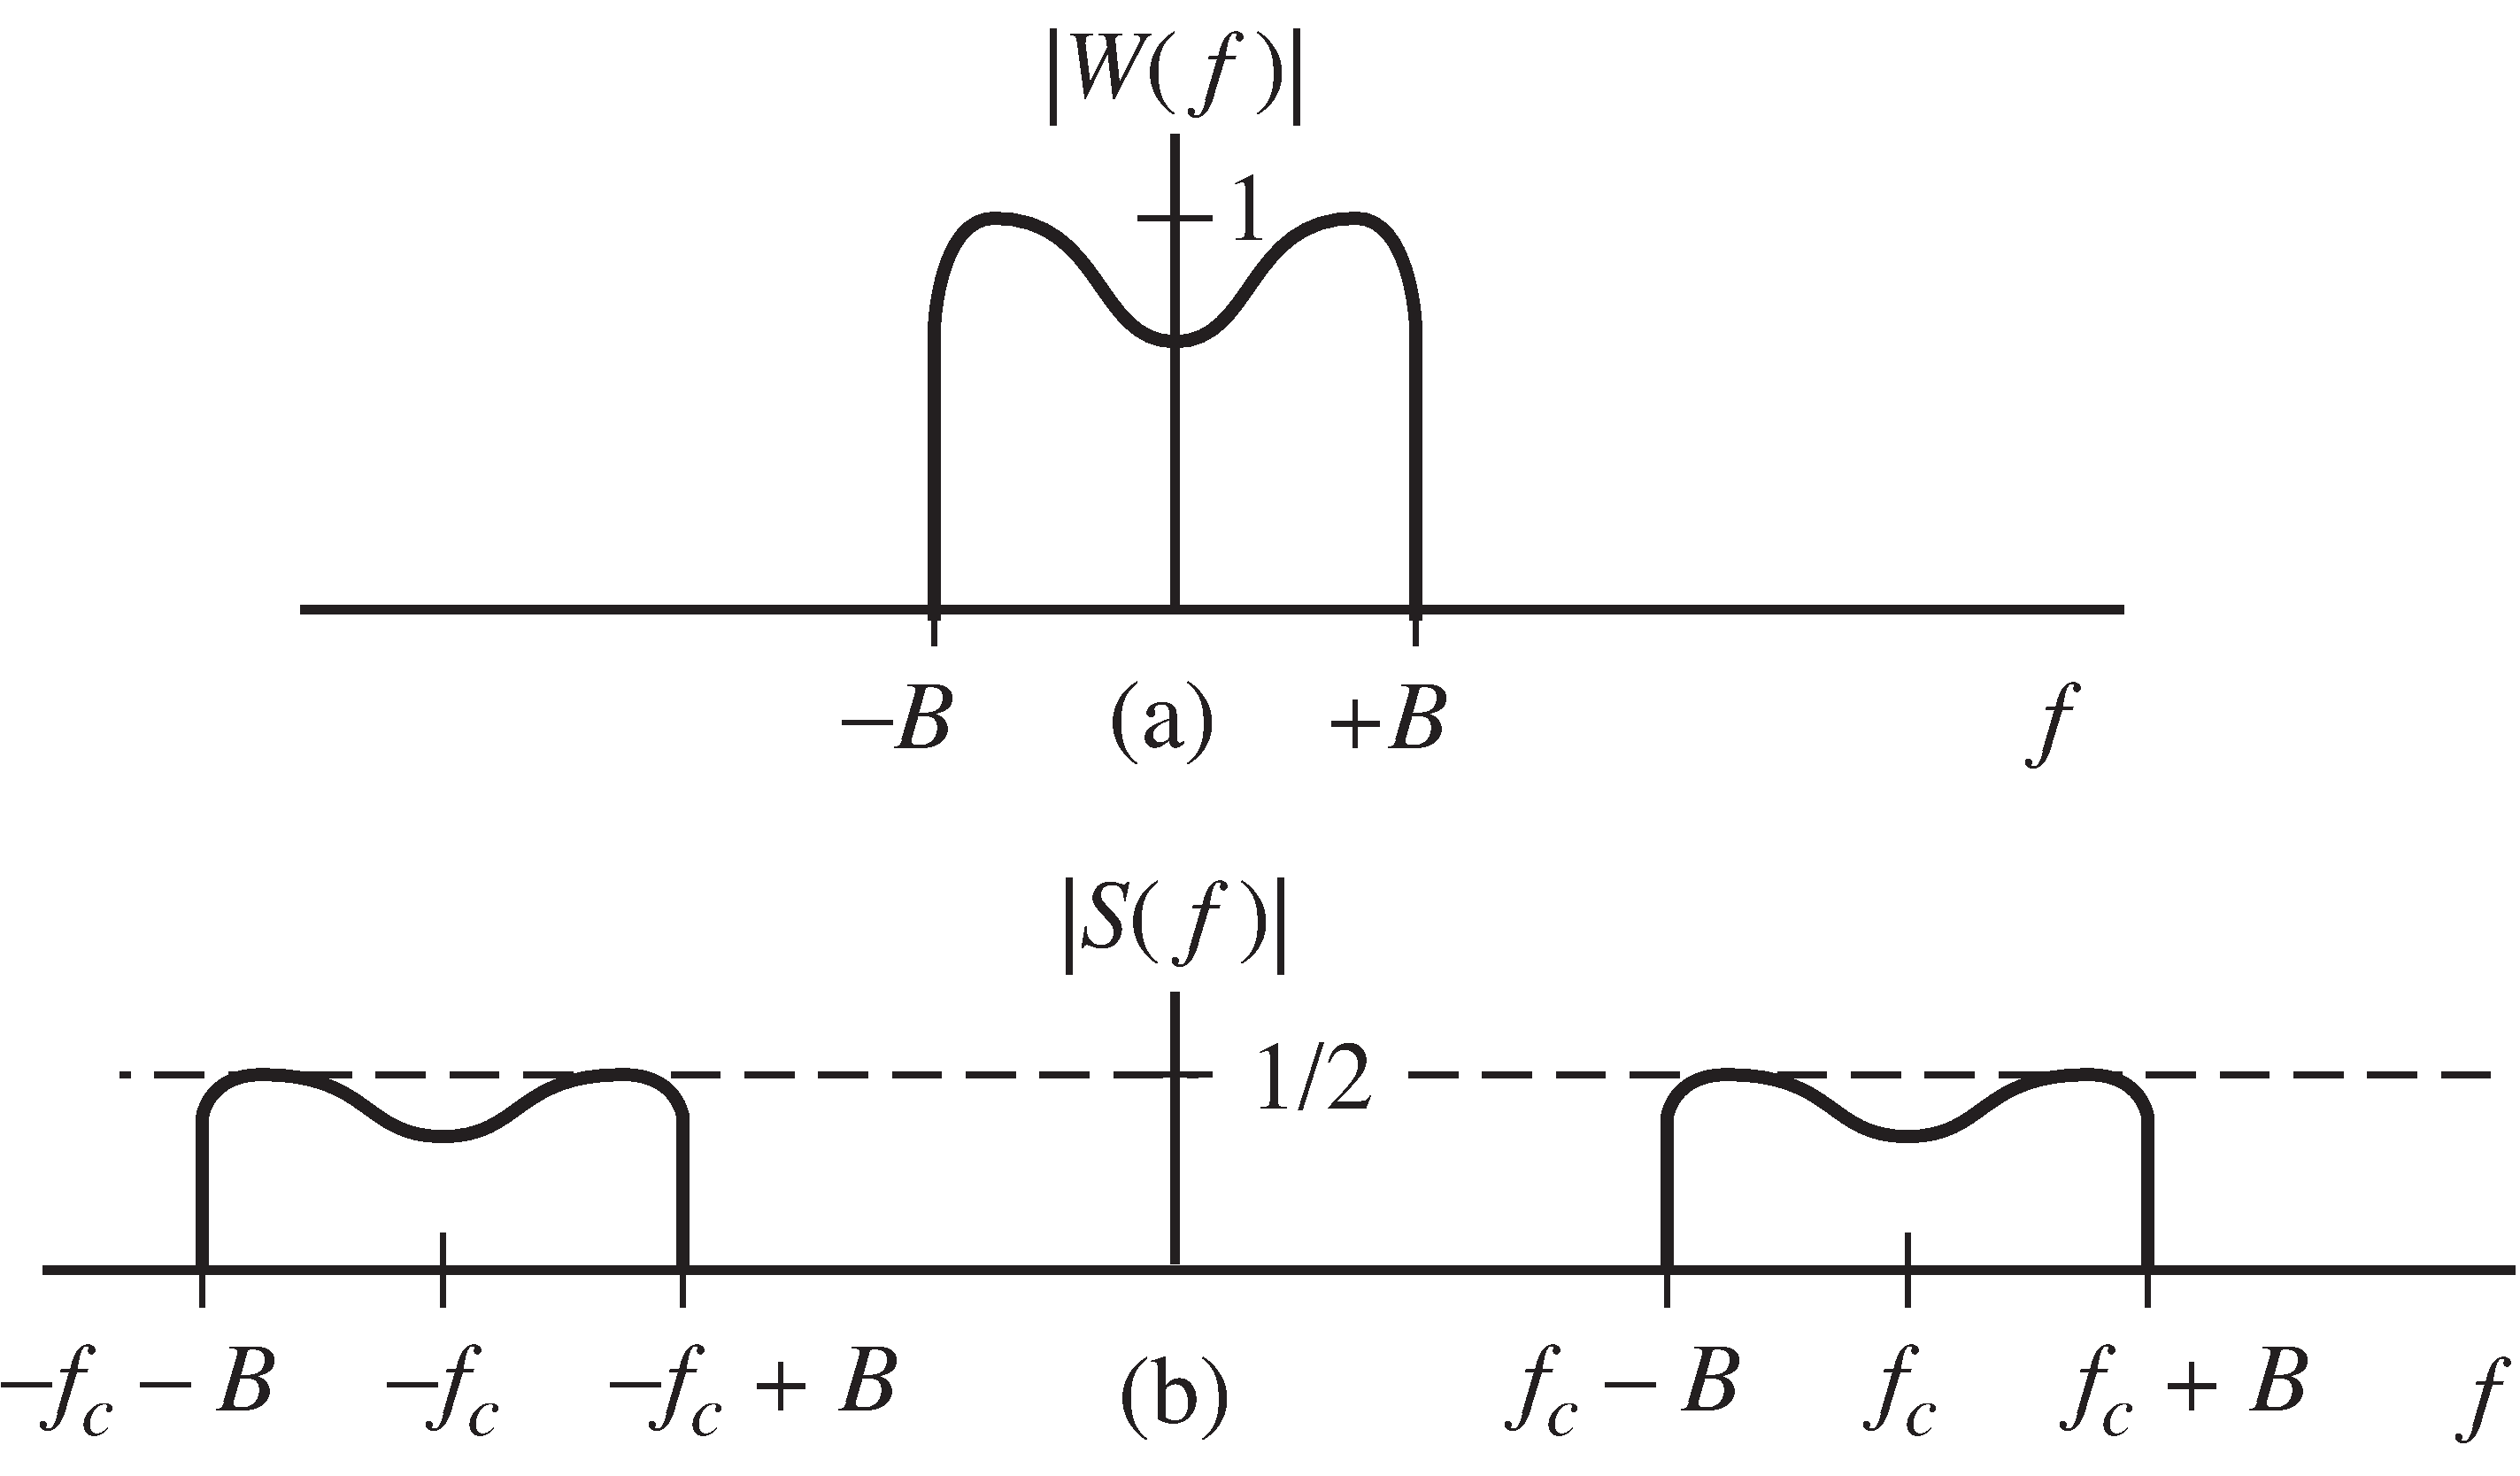 The magnitude spectrum of a message signal w(t) is shown in (a). When w(t) is modulated by a cosine at frequency f_c, the spectrum of the resulting signal s(t)=w(t)cos(2πf_ct+Φ) is shown in (b).